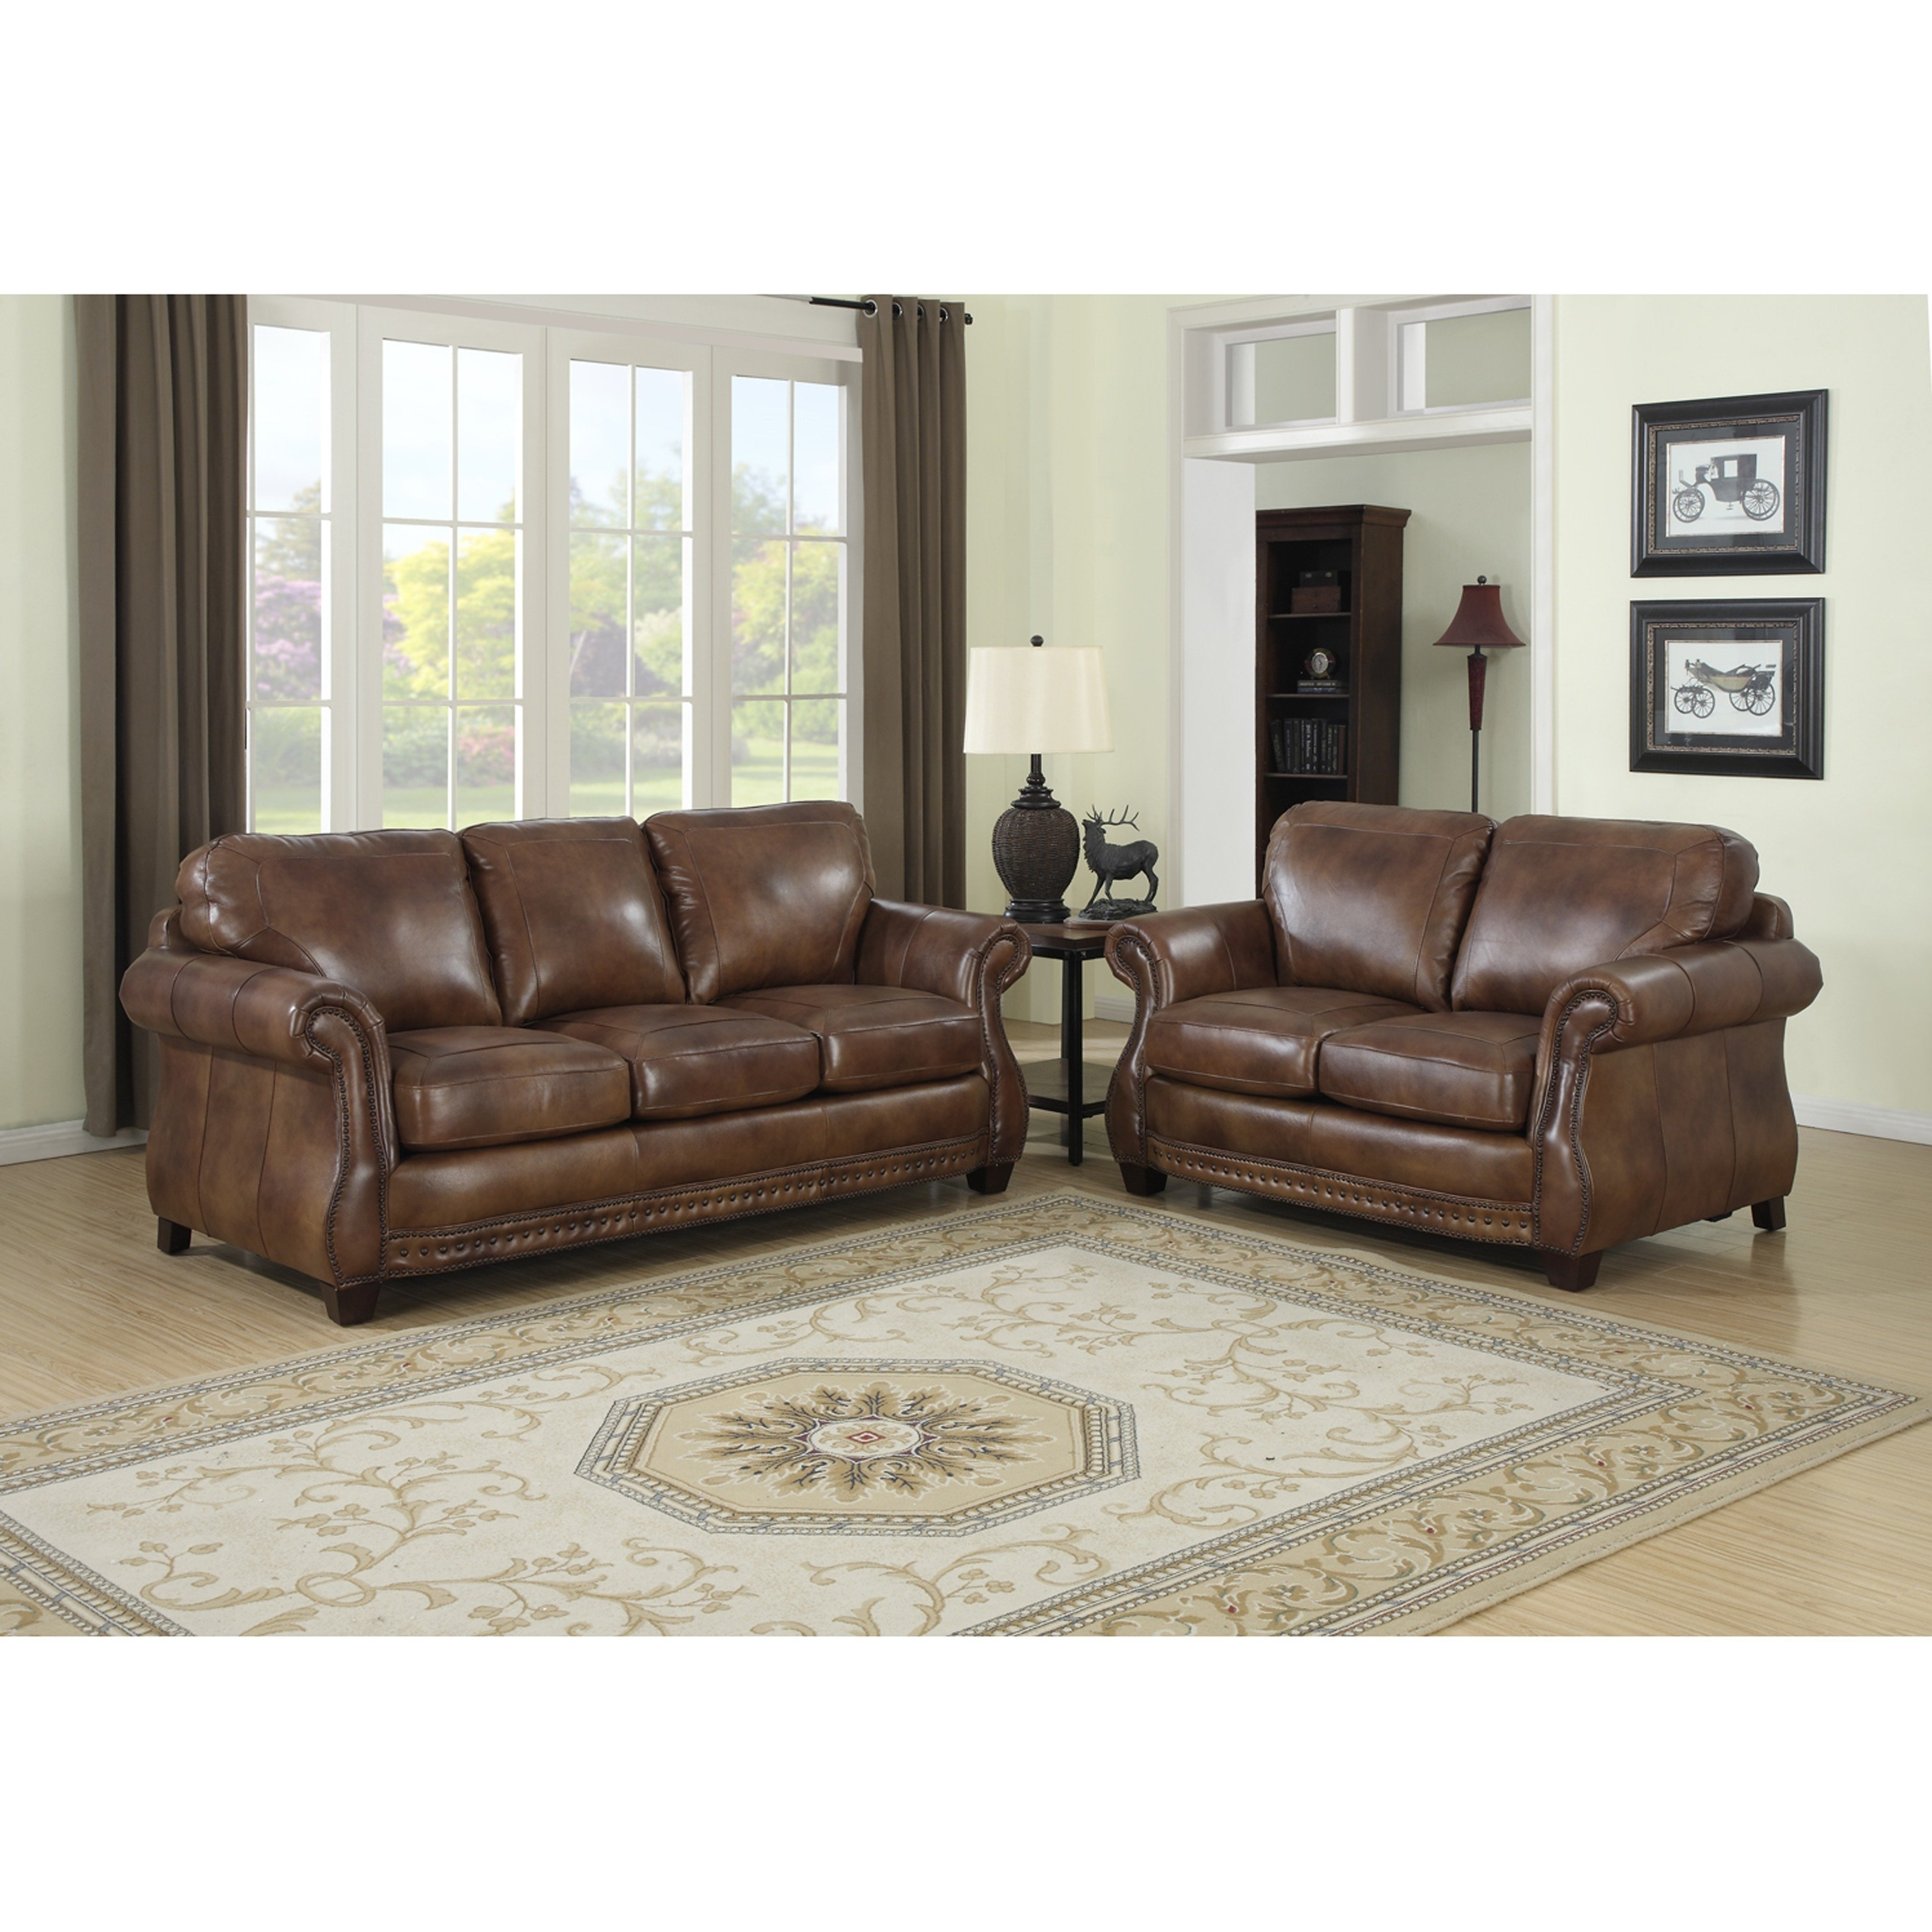 Cognac Sofa | Baci Living Room Intended For Tenny Cognac 2 Piece Right Facing Chaise Sectionals With 2 Headrest (Image 9 of 25)